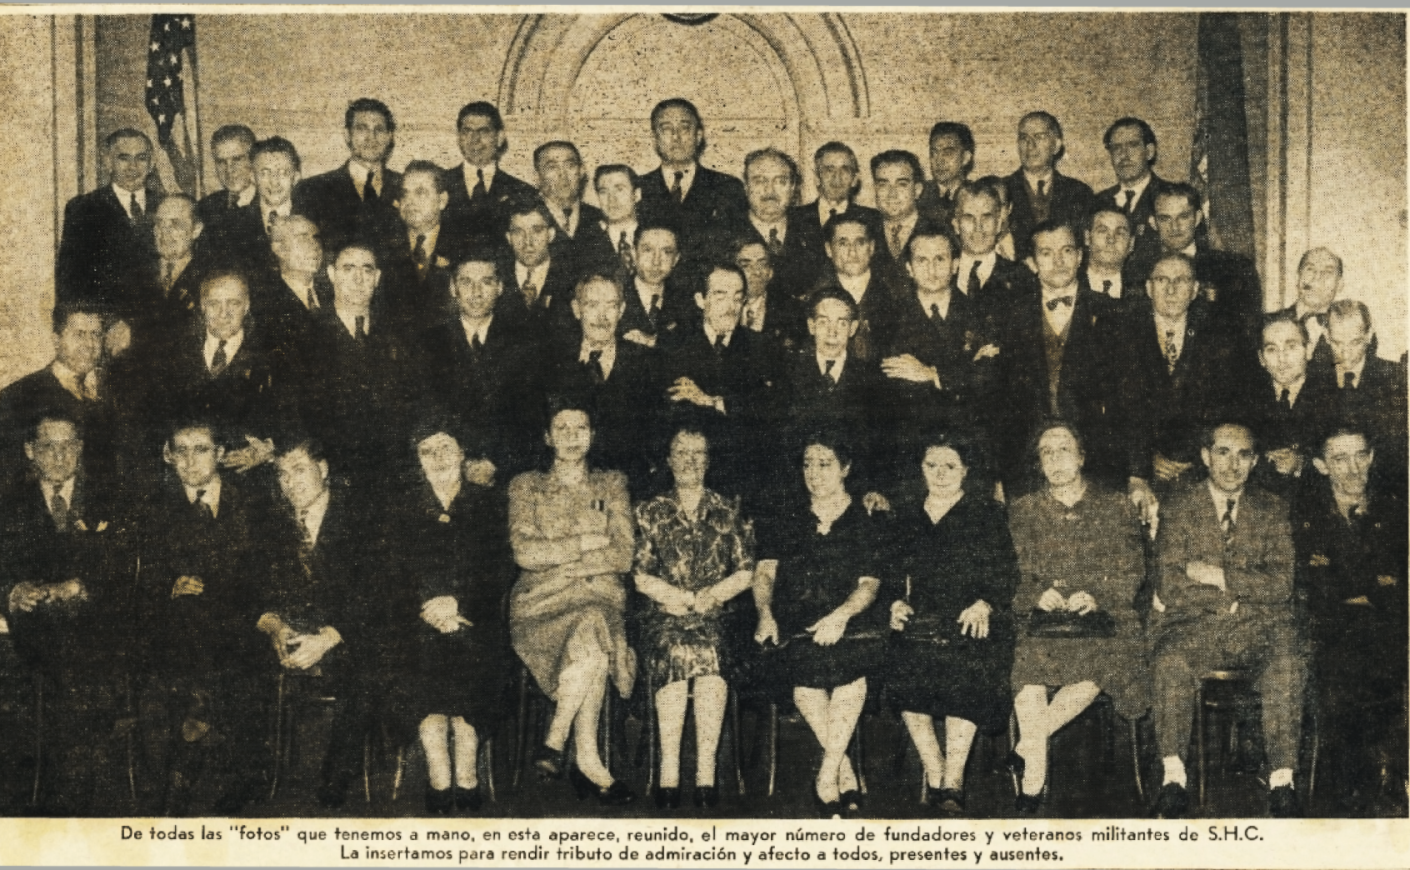 España Libre, Feb. 16, 1962:1. Founders' picture. From left to right: Jesús González Malo (11th first row); José Nieto Ruiz (4th second row​); Félix Martí Ibáñez (8th second row); Aurelio Pego (5th top row).